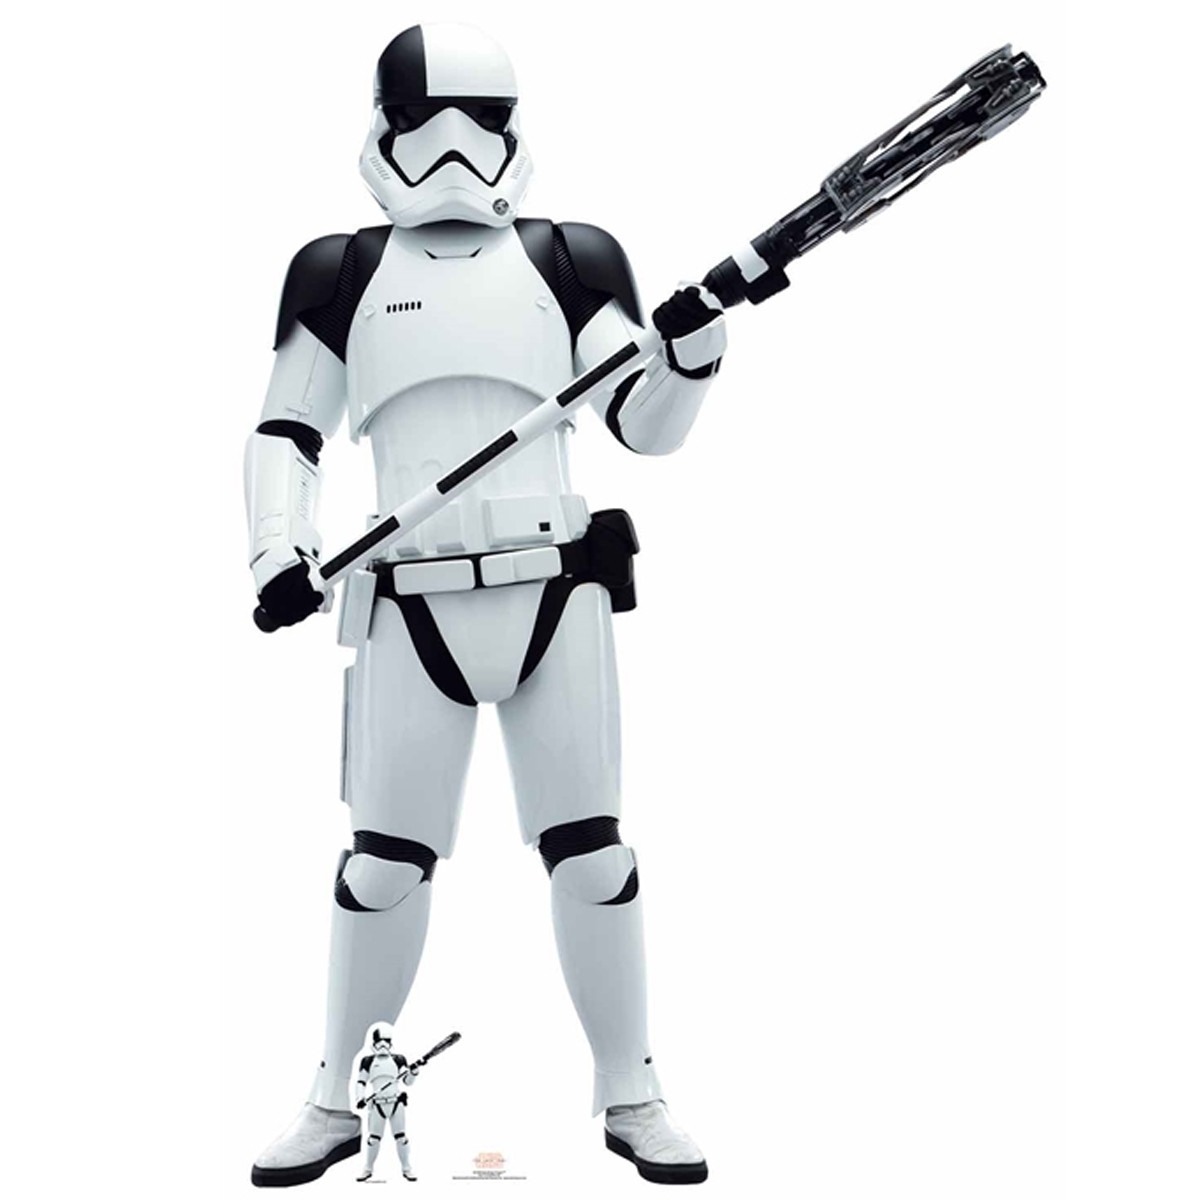 Figurine en carton taille réelle Executioner Trooper Star Wars